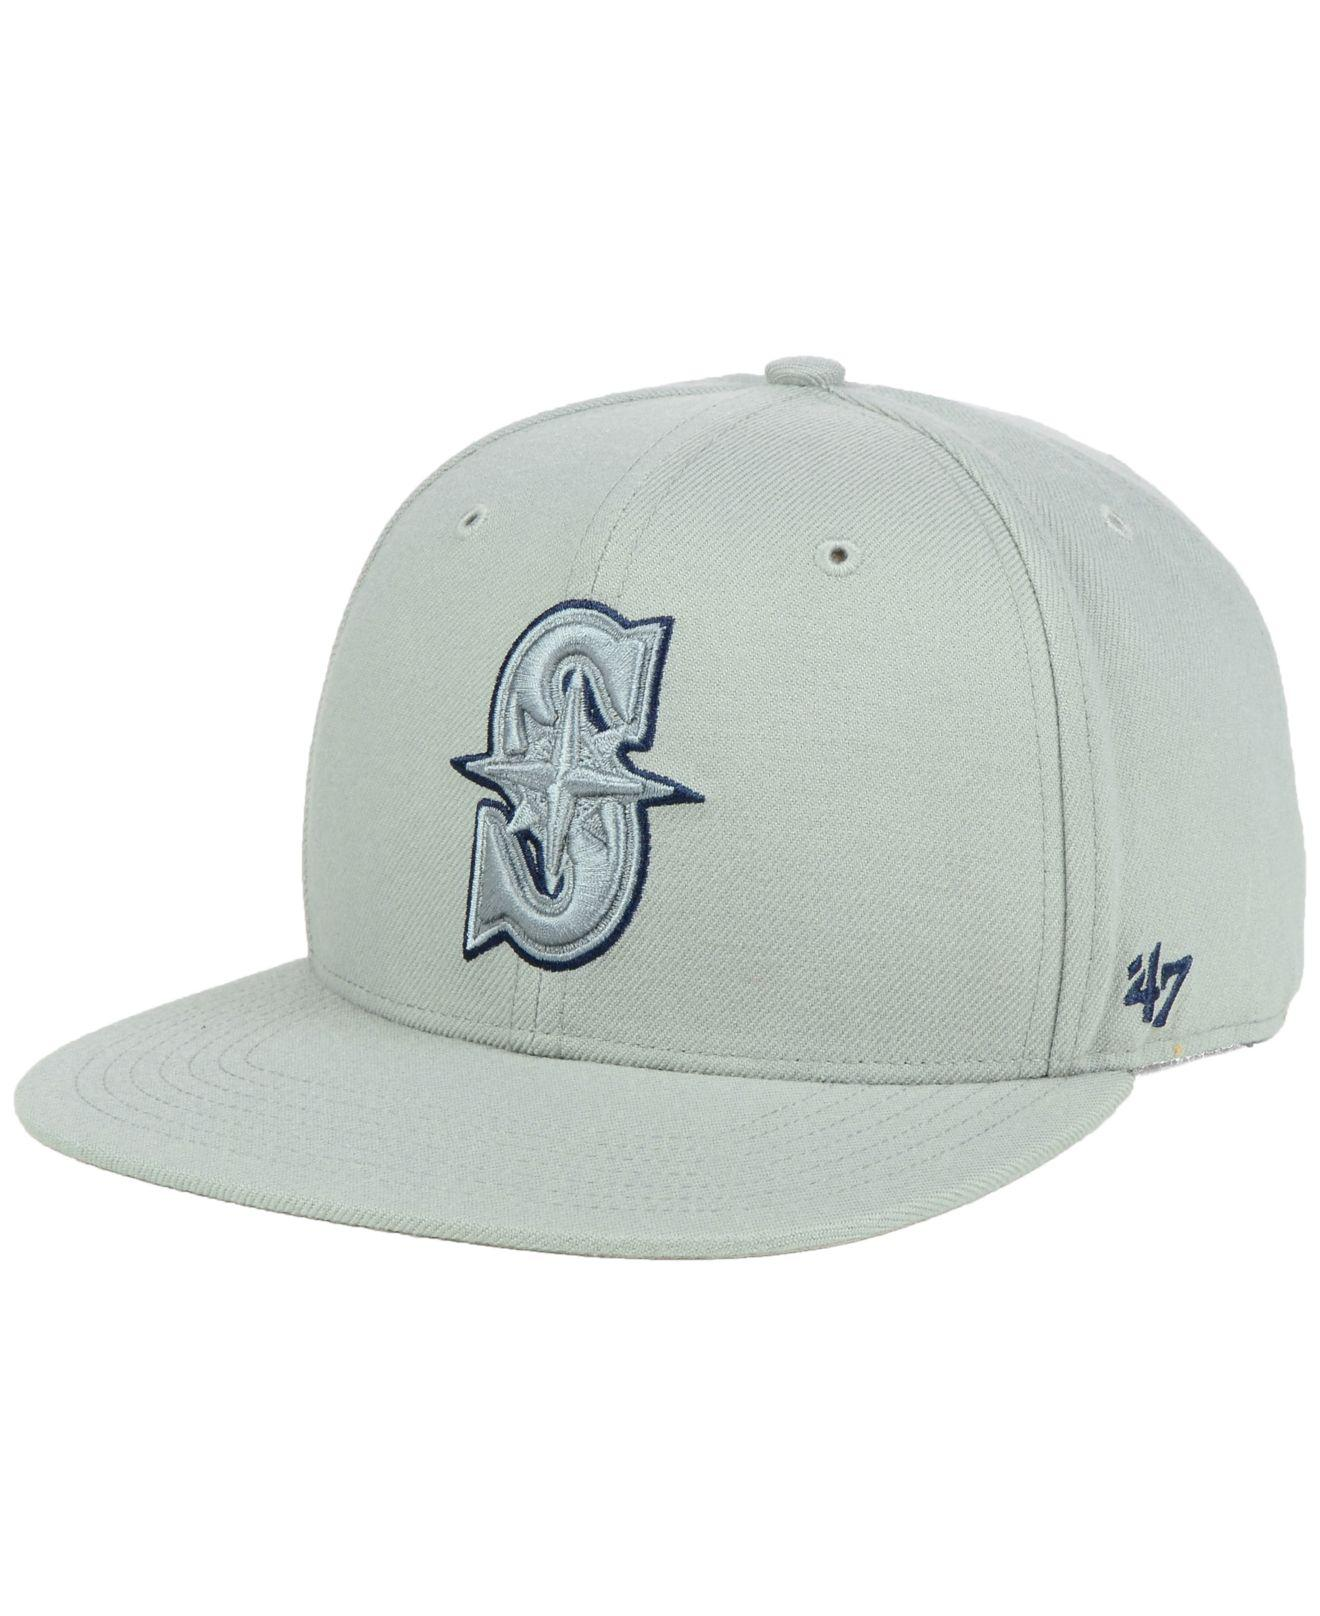 64124d65f082c Lyst - 47 Brand Seattle Mariners No Shot Tonal Captain Cap in Gray ...